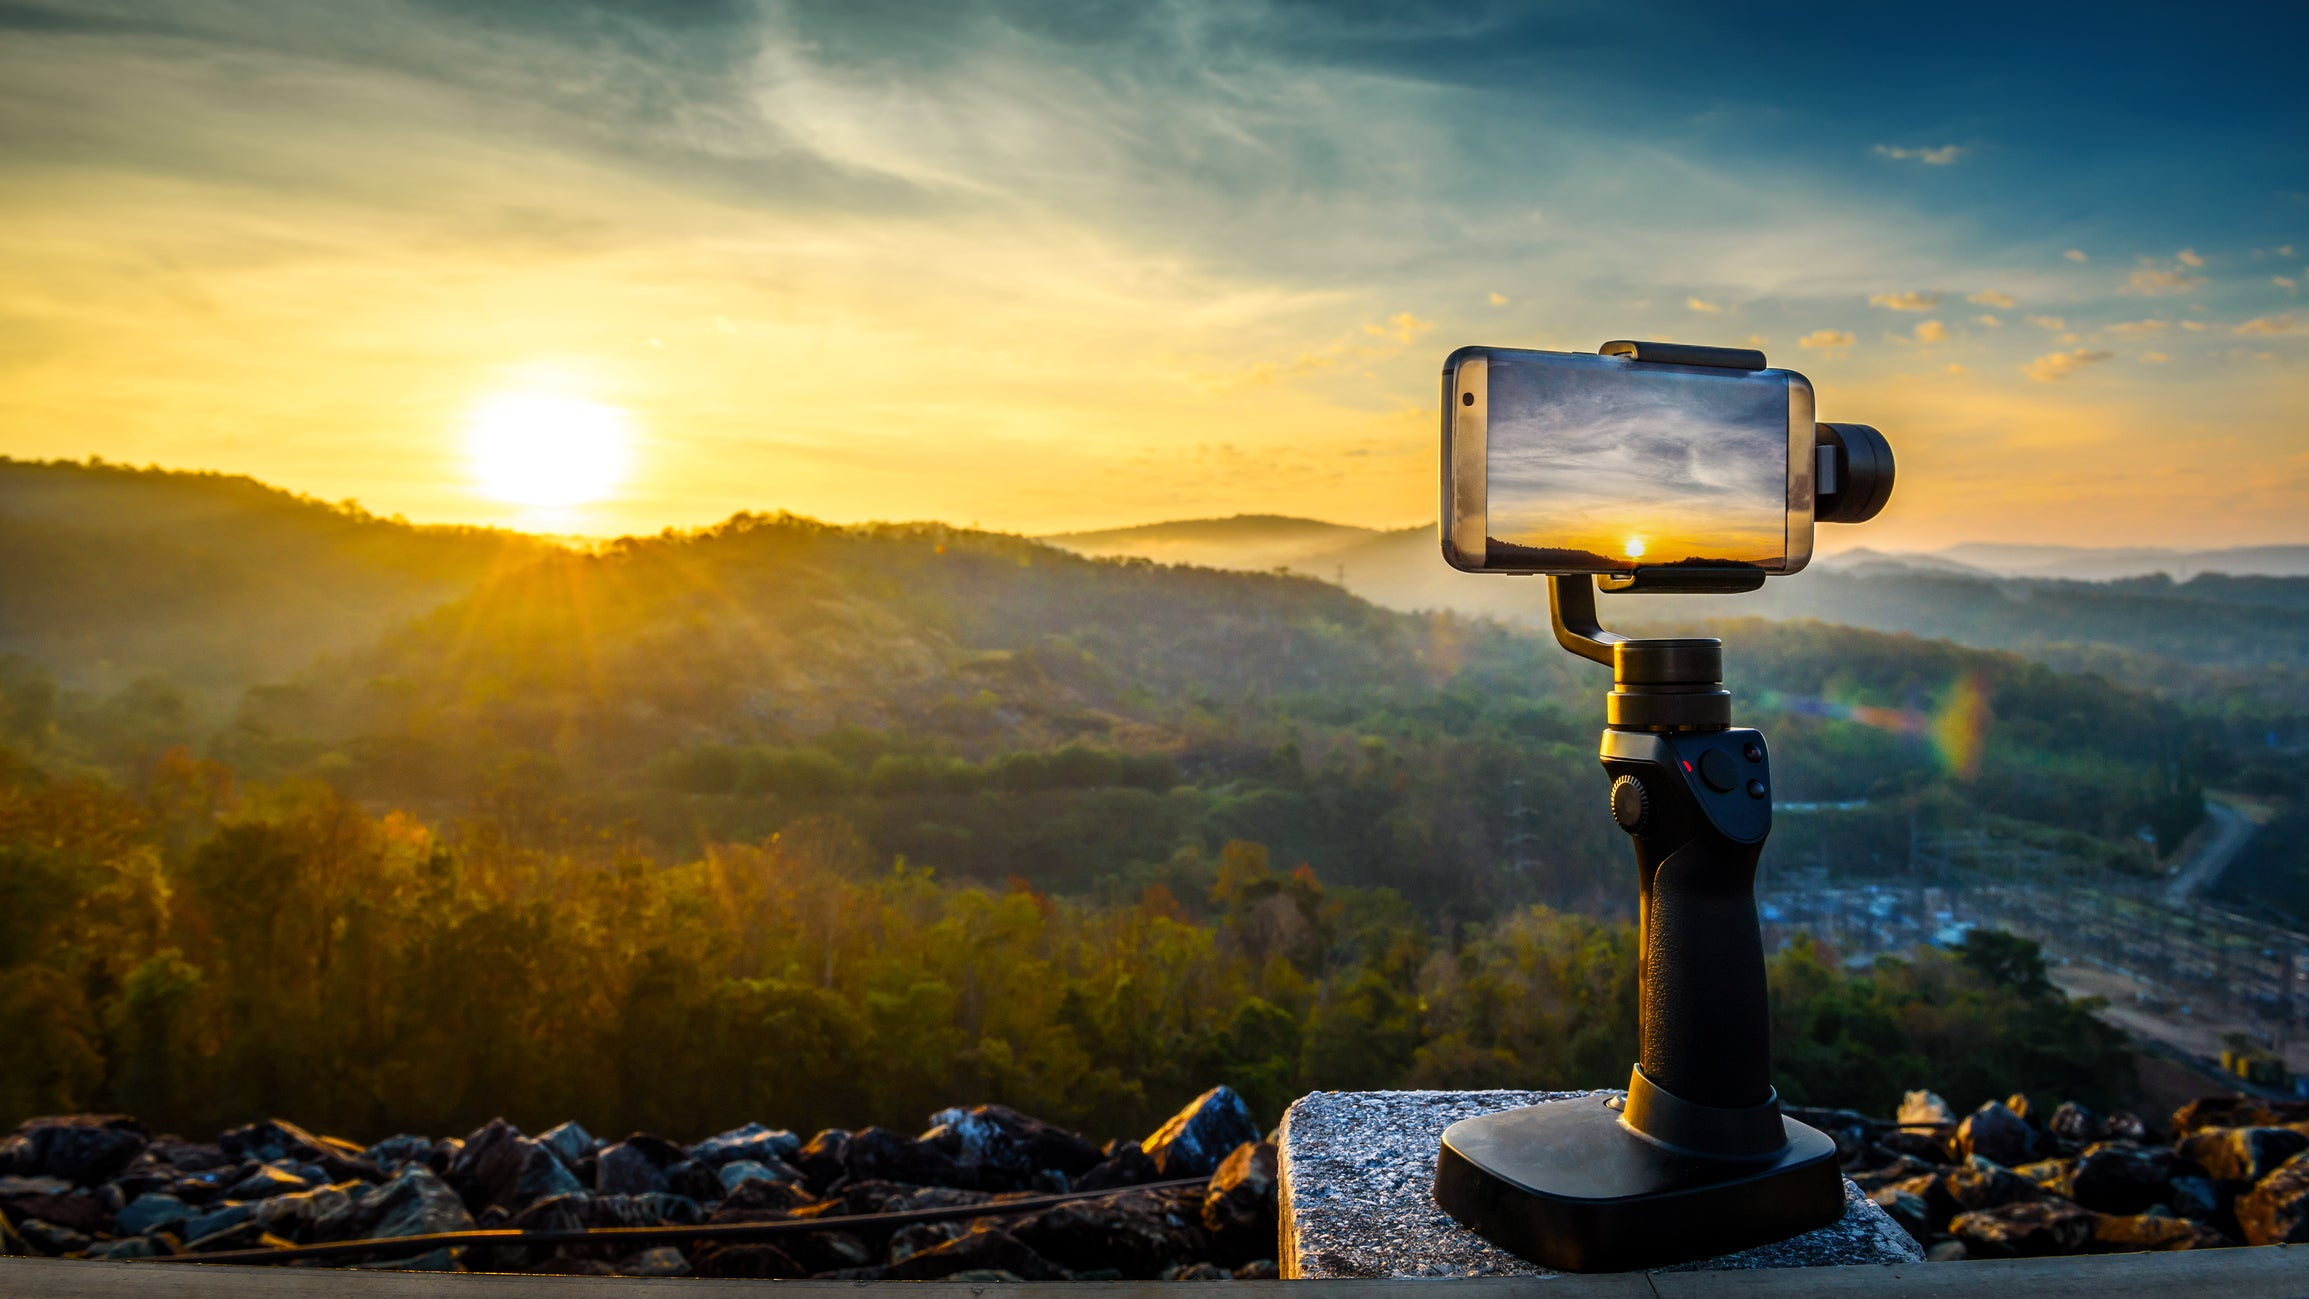 A smartphone being used to take a picture of a sunset.